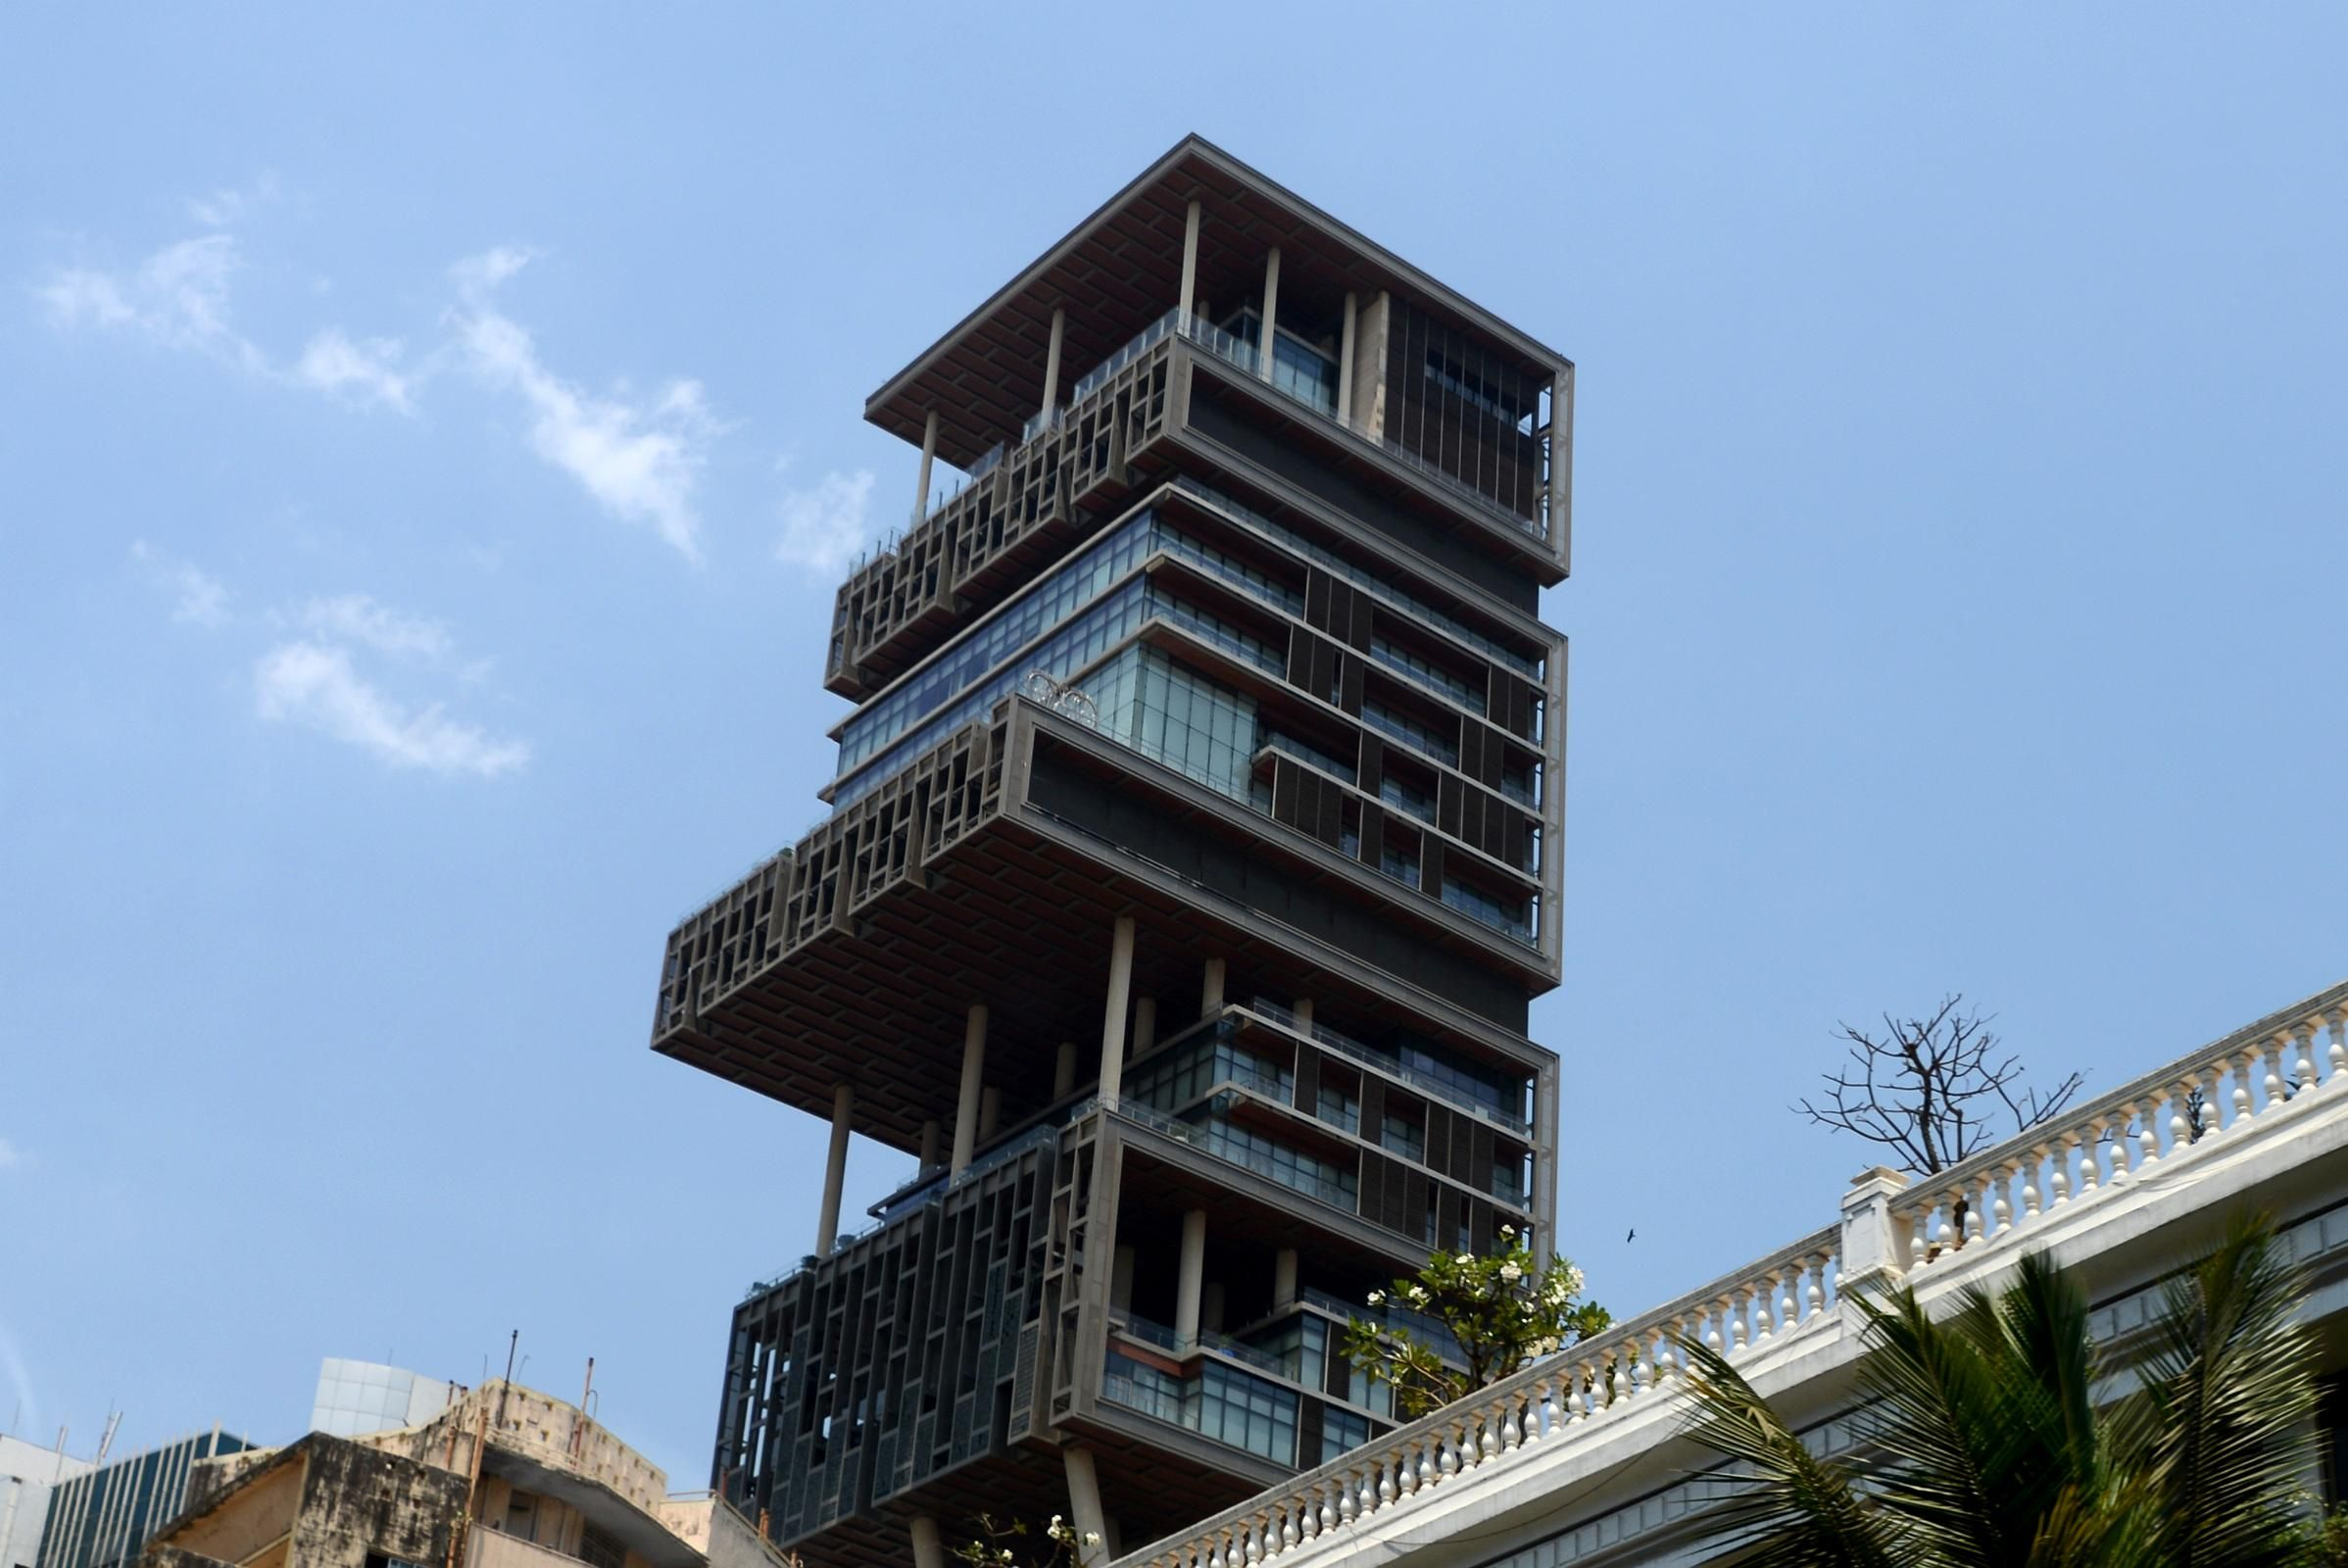 Most Expensive House In The World 2014 image result for antilia, india | luxury | pinterest